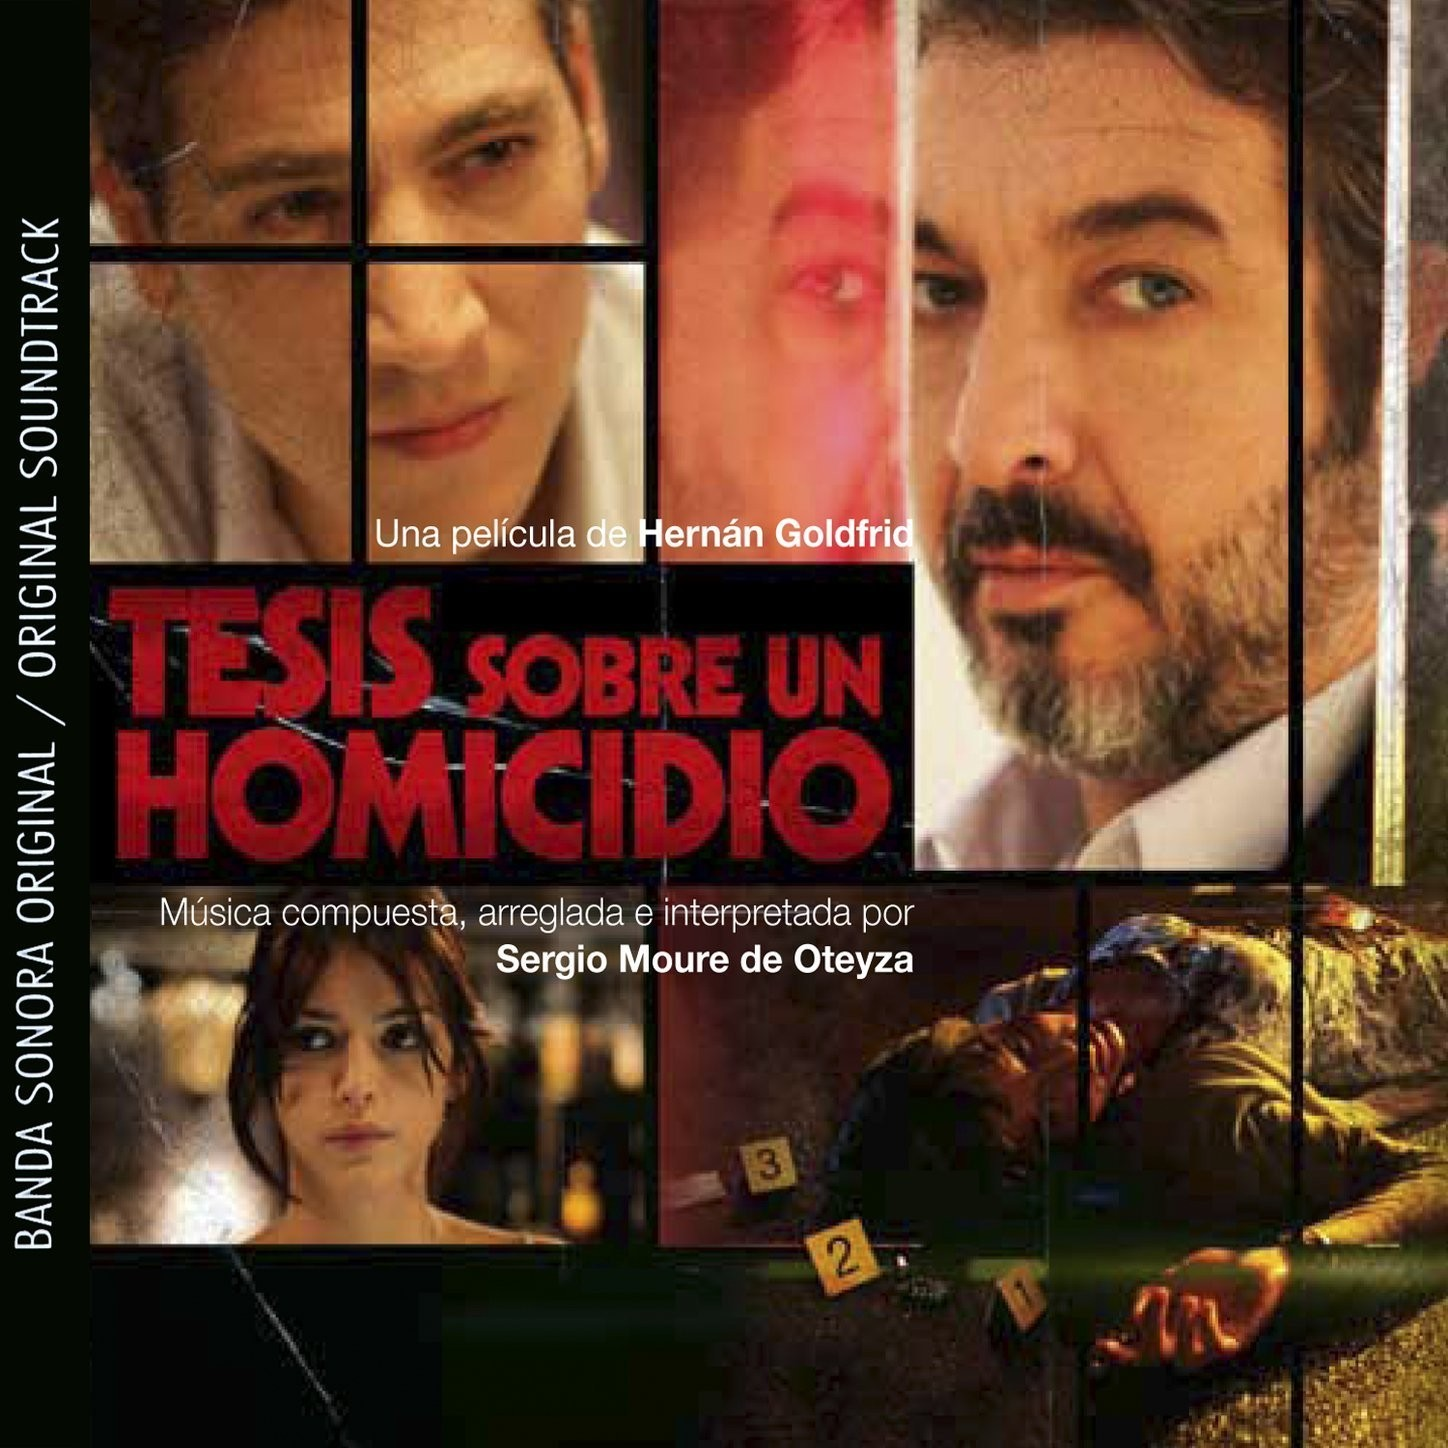 thesis on a homicide full movie Watch thesis on a homicide (2013) free online - roberto is a specialist in criminal law whose life is thrown into chaos when he becomes convinced that gonzalo, one of.